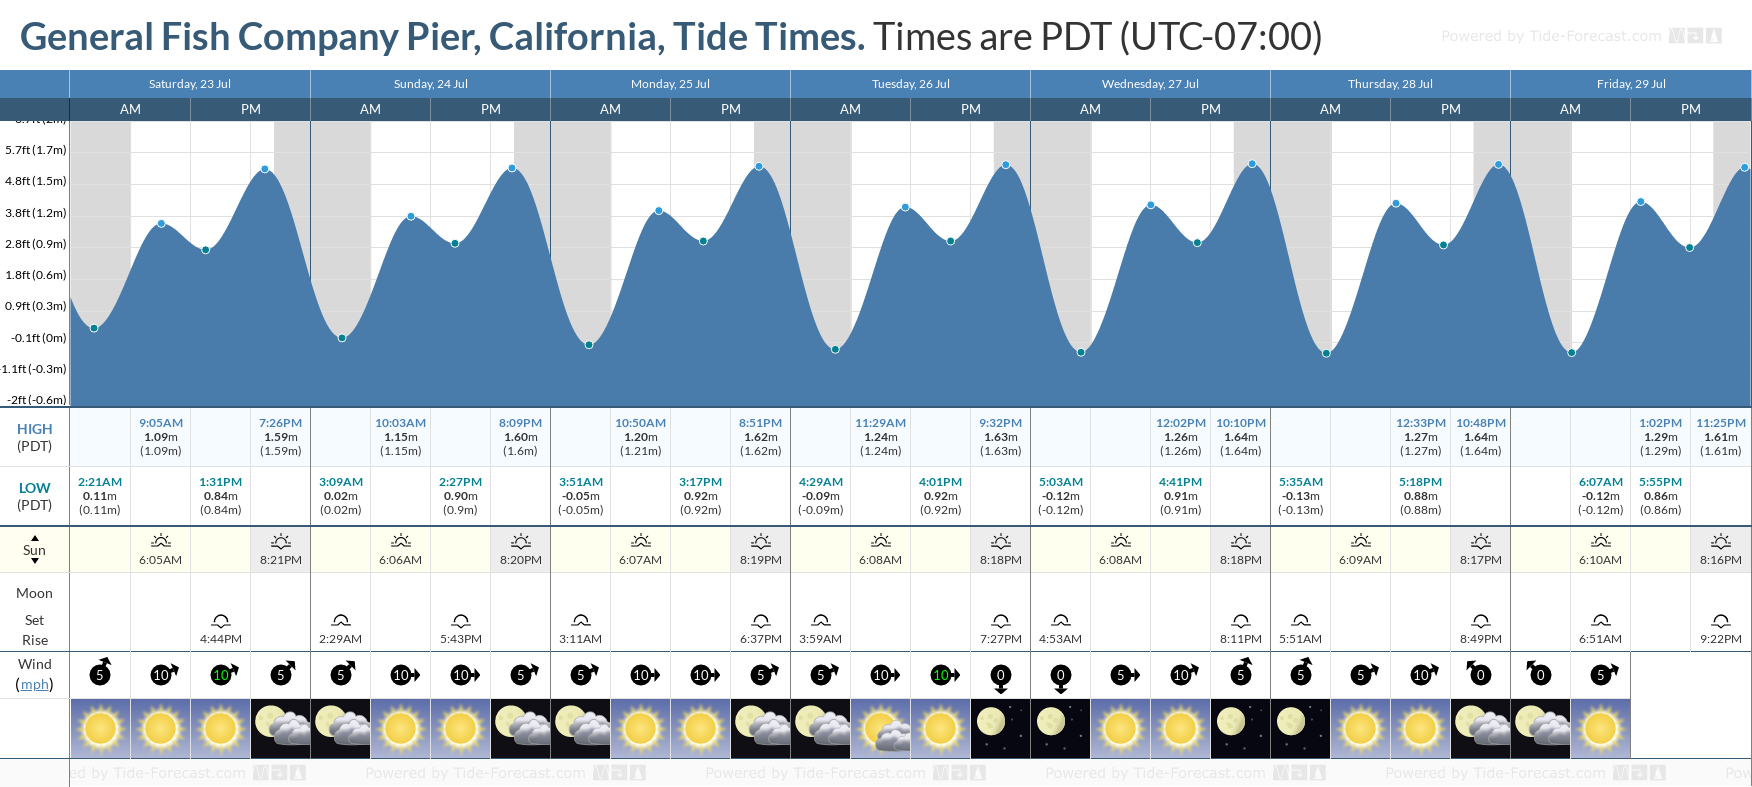 General Fish Company Pier, California Tide Chart including high and low tide tide times for the next 7 days